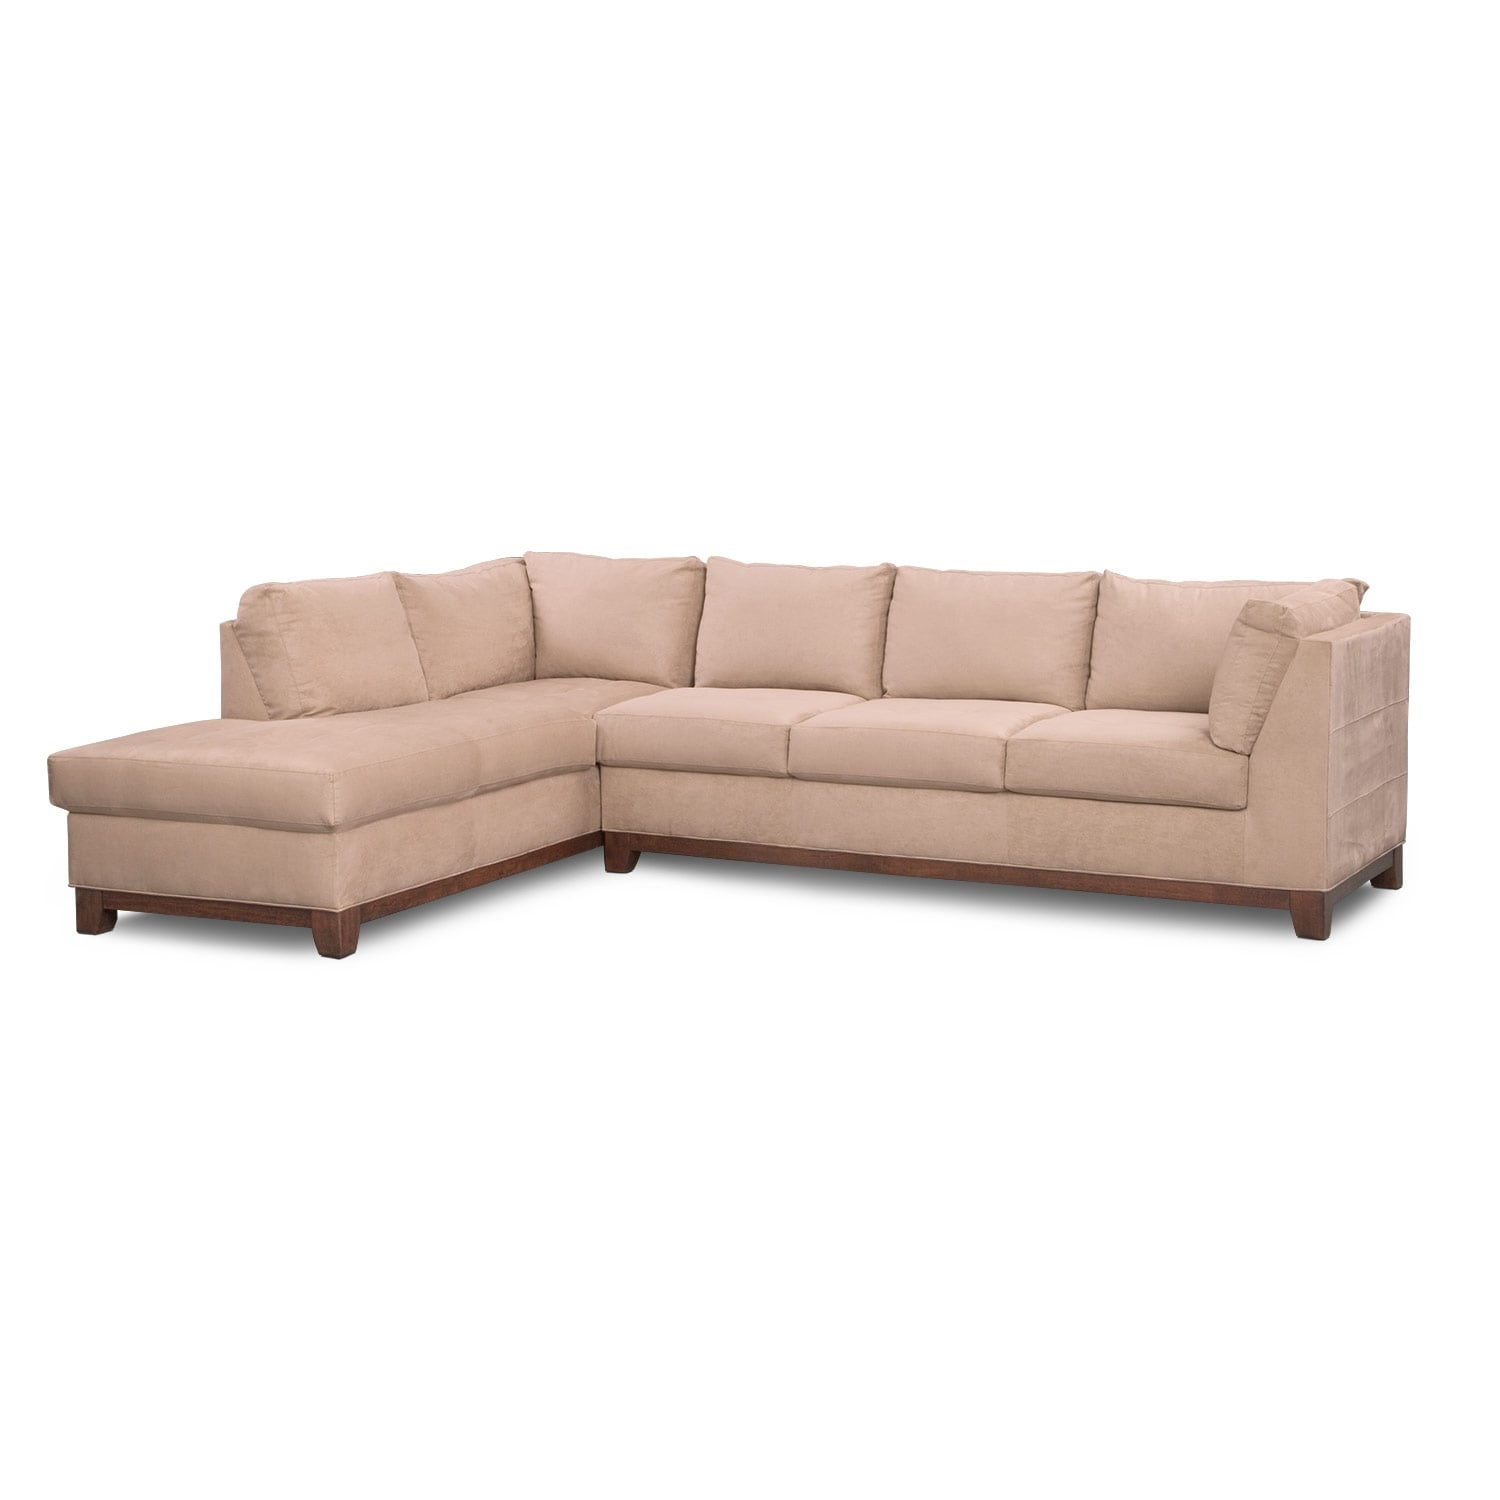 Soho ii 2 pc sectional reverse value city furniture for Living room sectionals